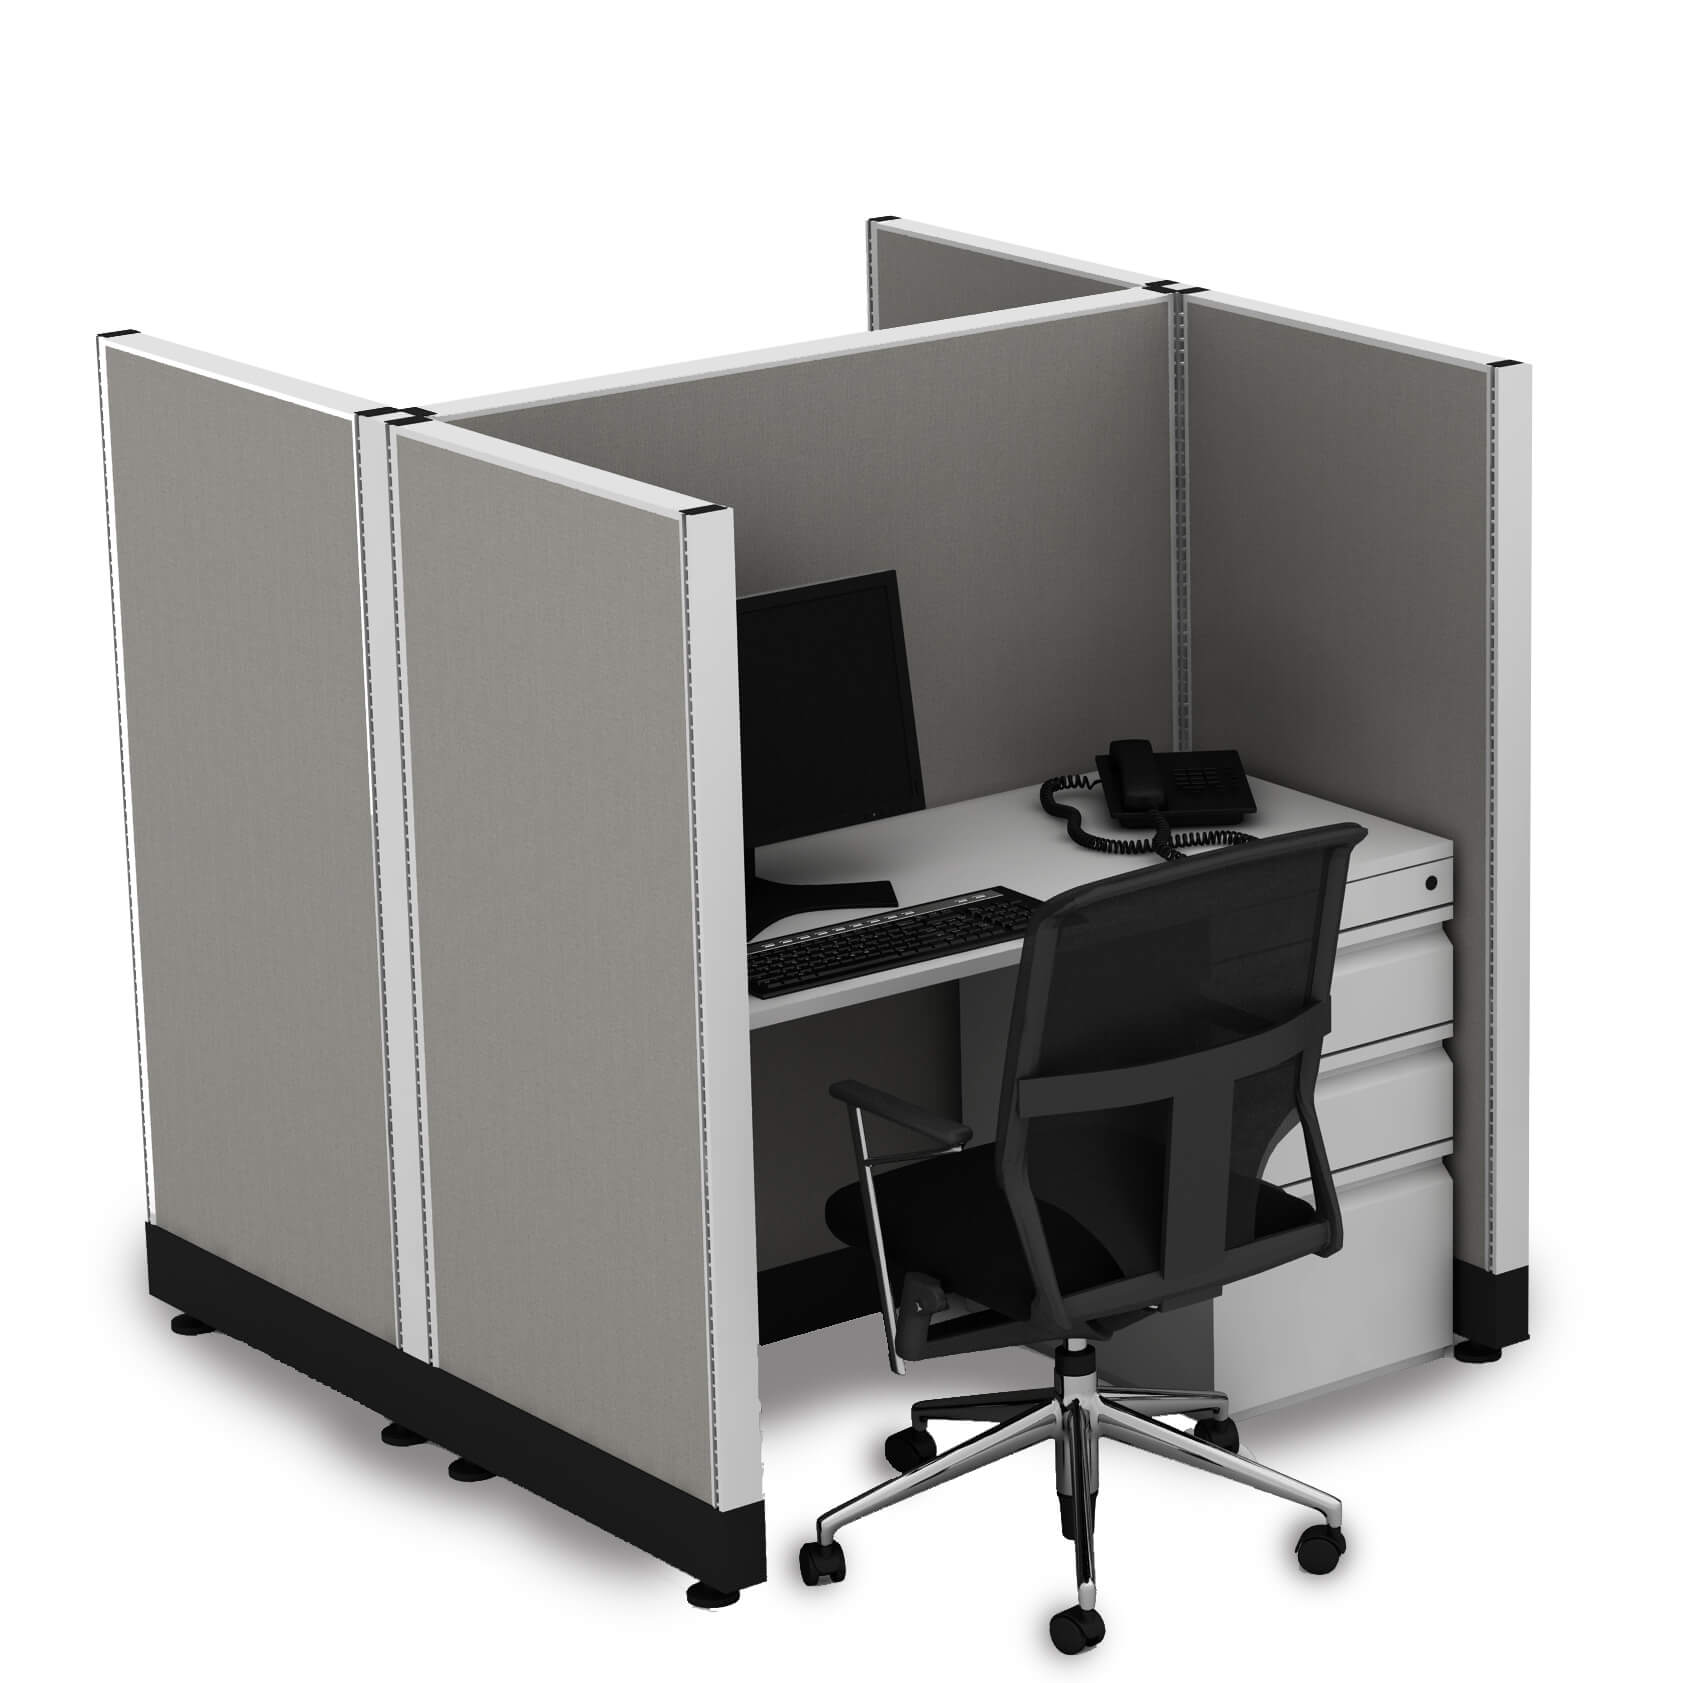 Hot desking hotelling station 2 pack powered